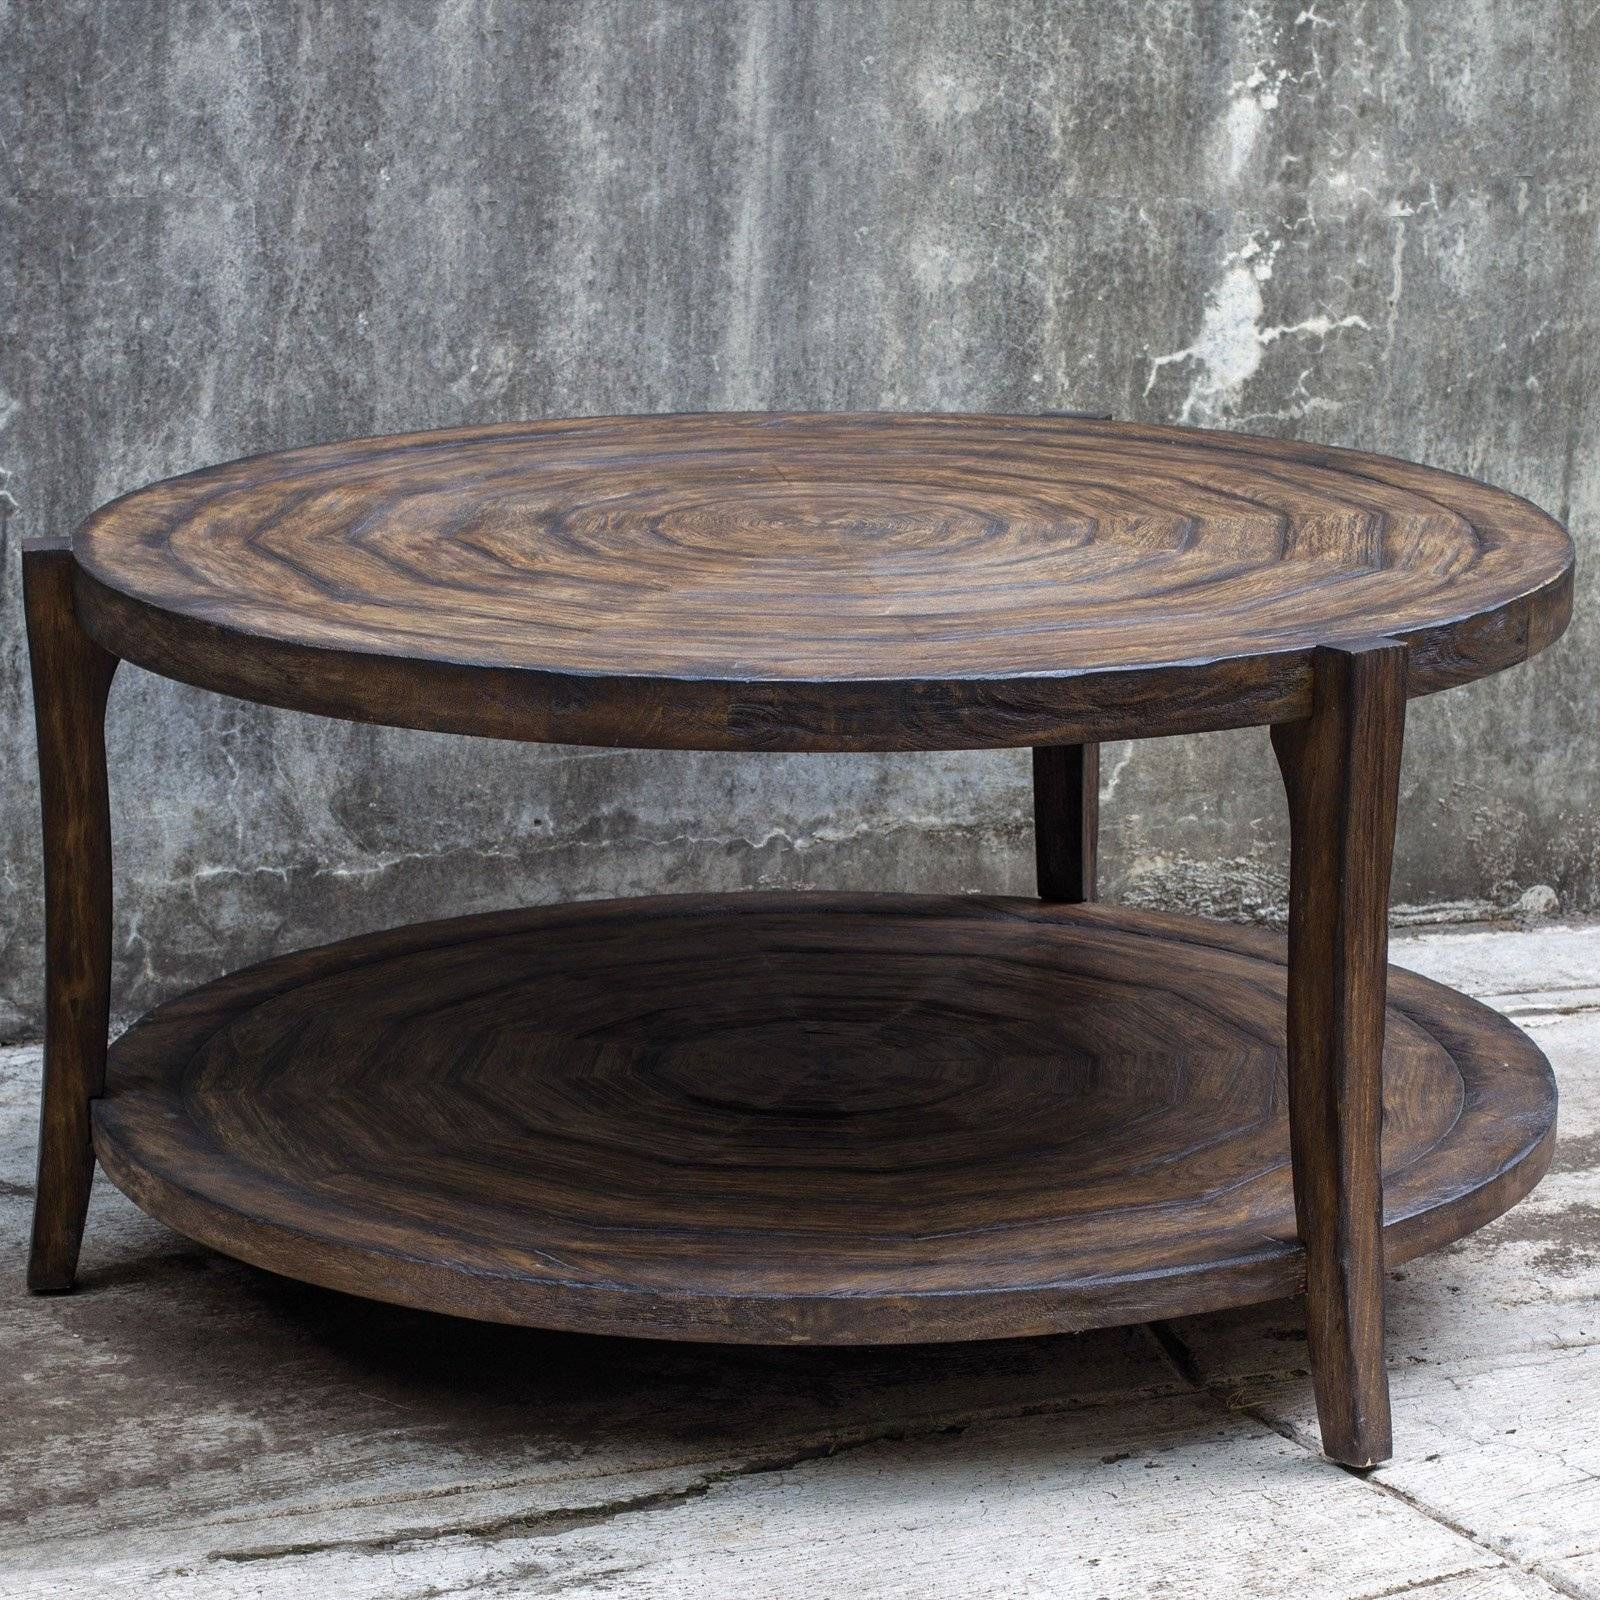 Rustic Round Coffee Tables | Coffee Tables Decoration in Wayfair Coffee Tables (Image 22 of 30)